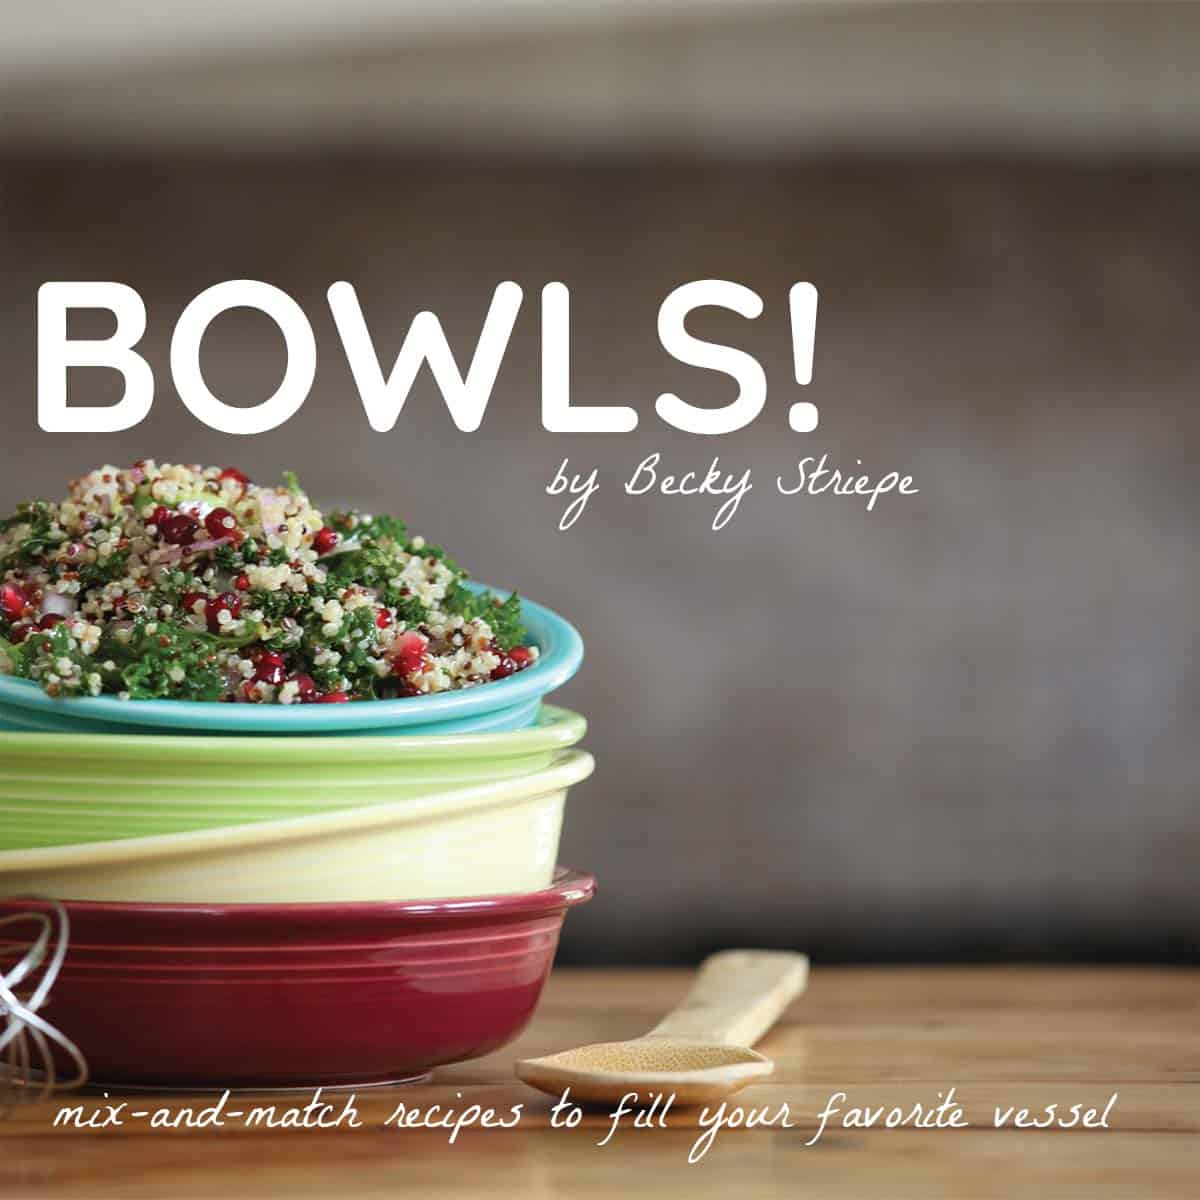 Bowls: mix-and-match recipes to fill your favorite vessel